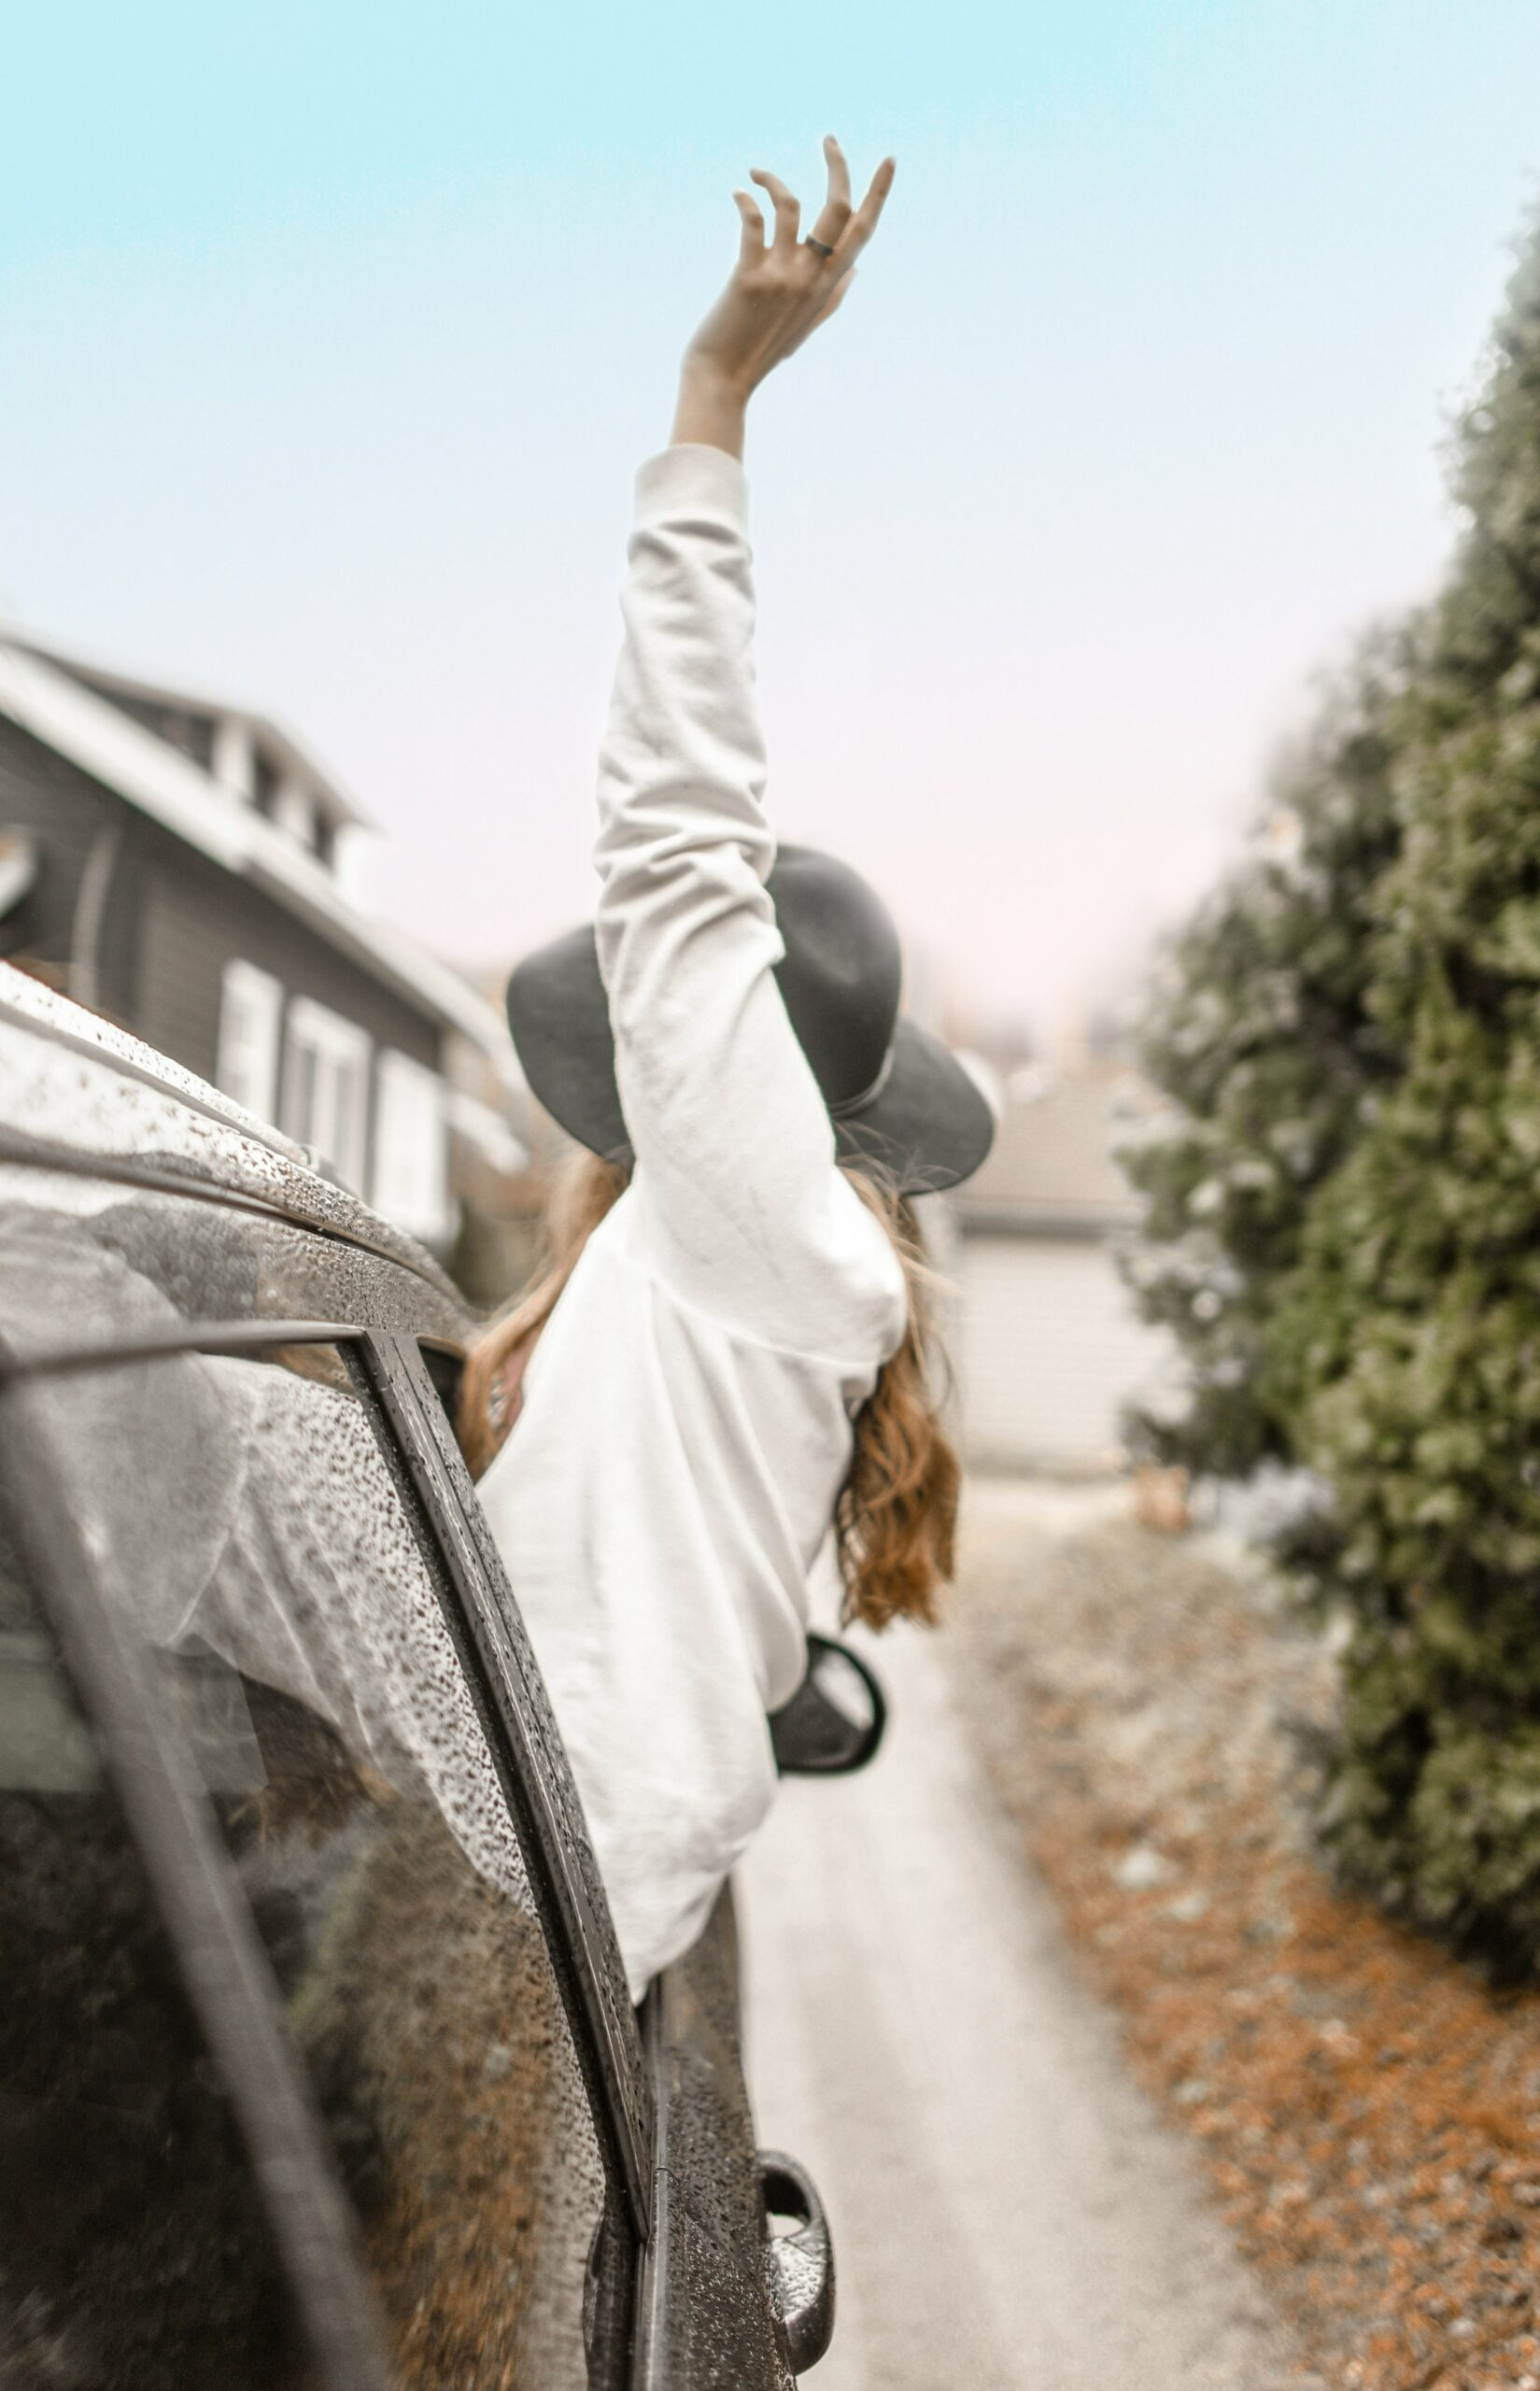 Raising hand out of window of car